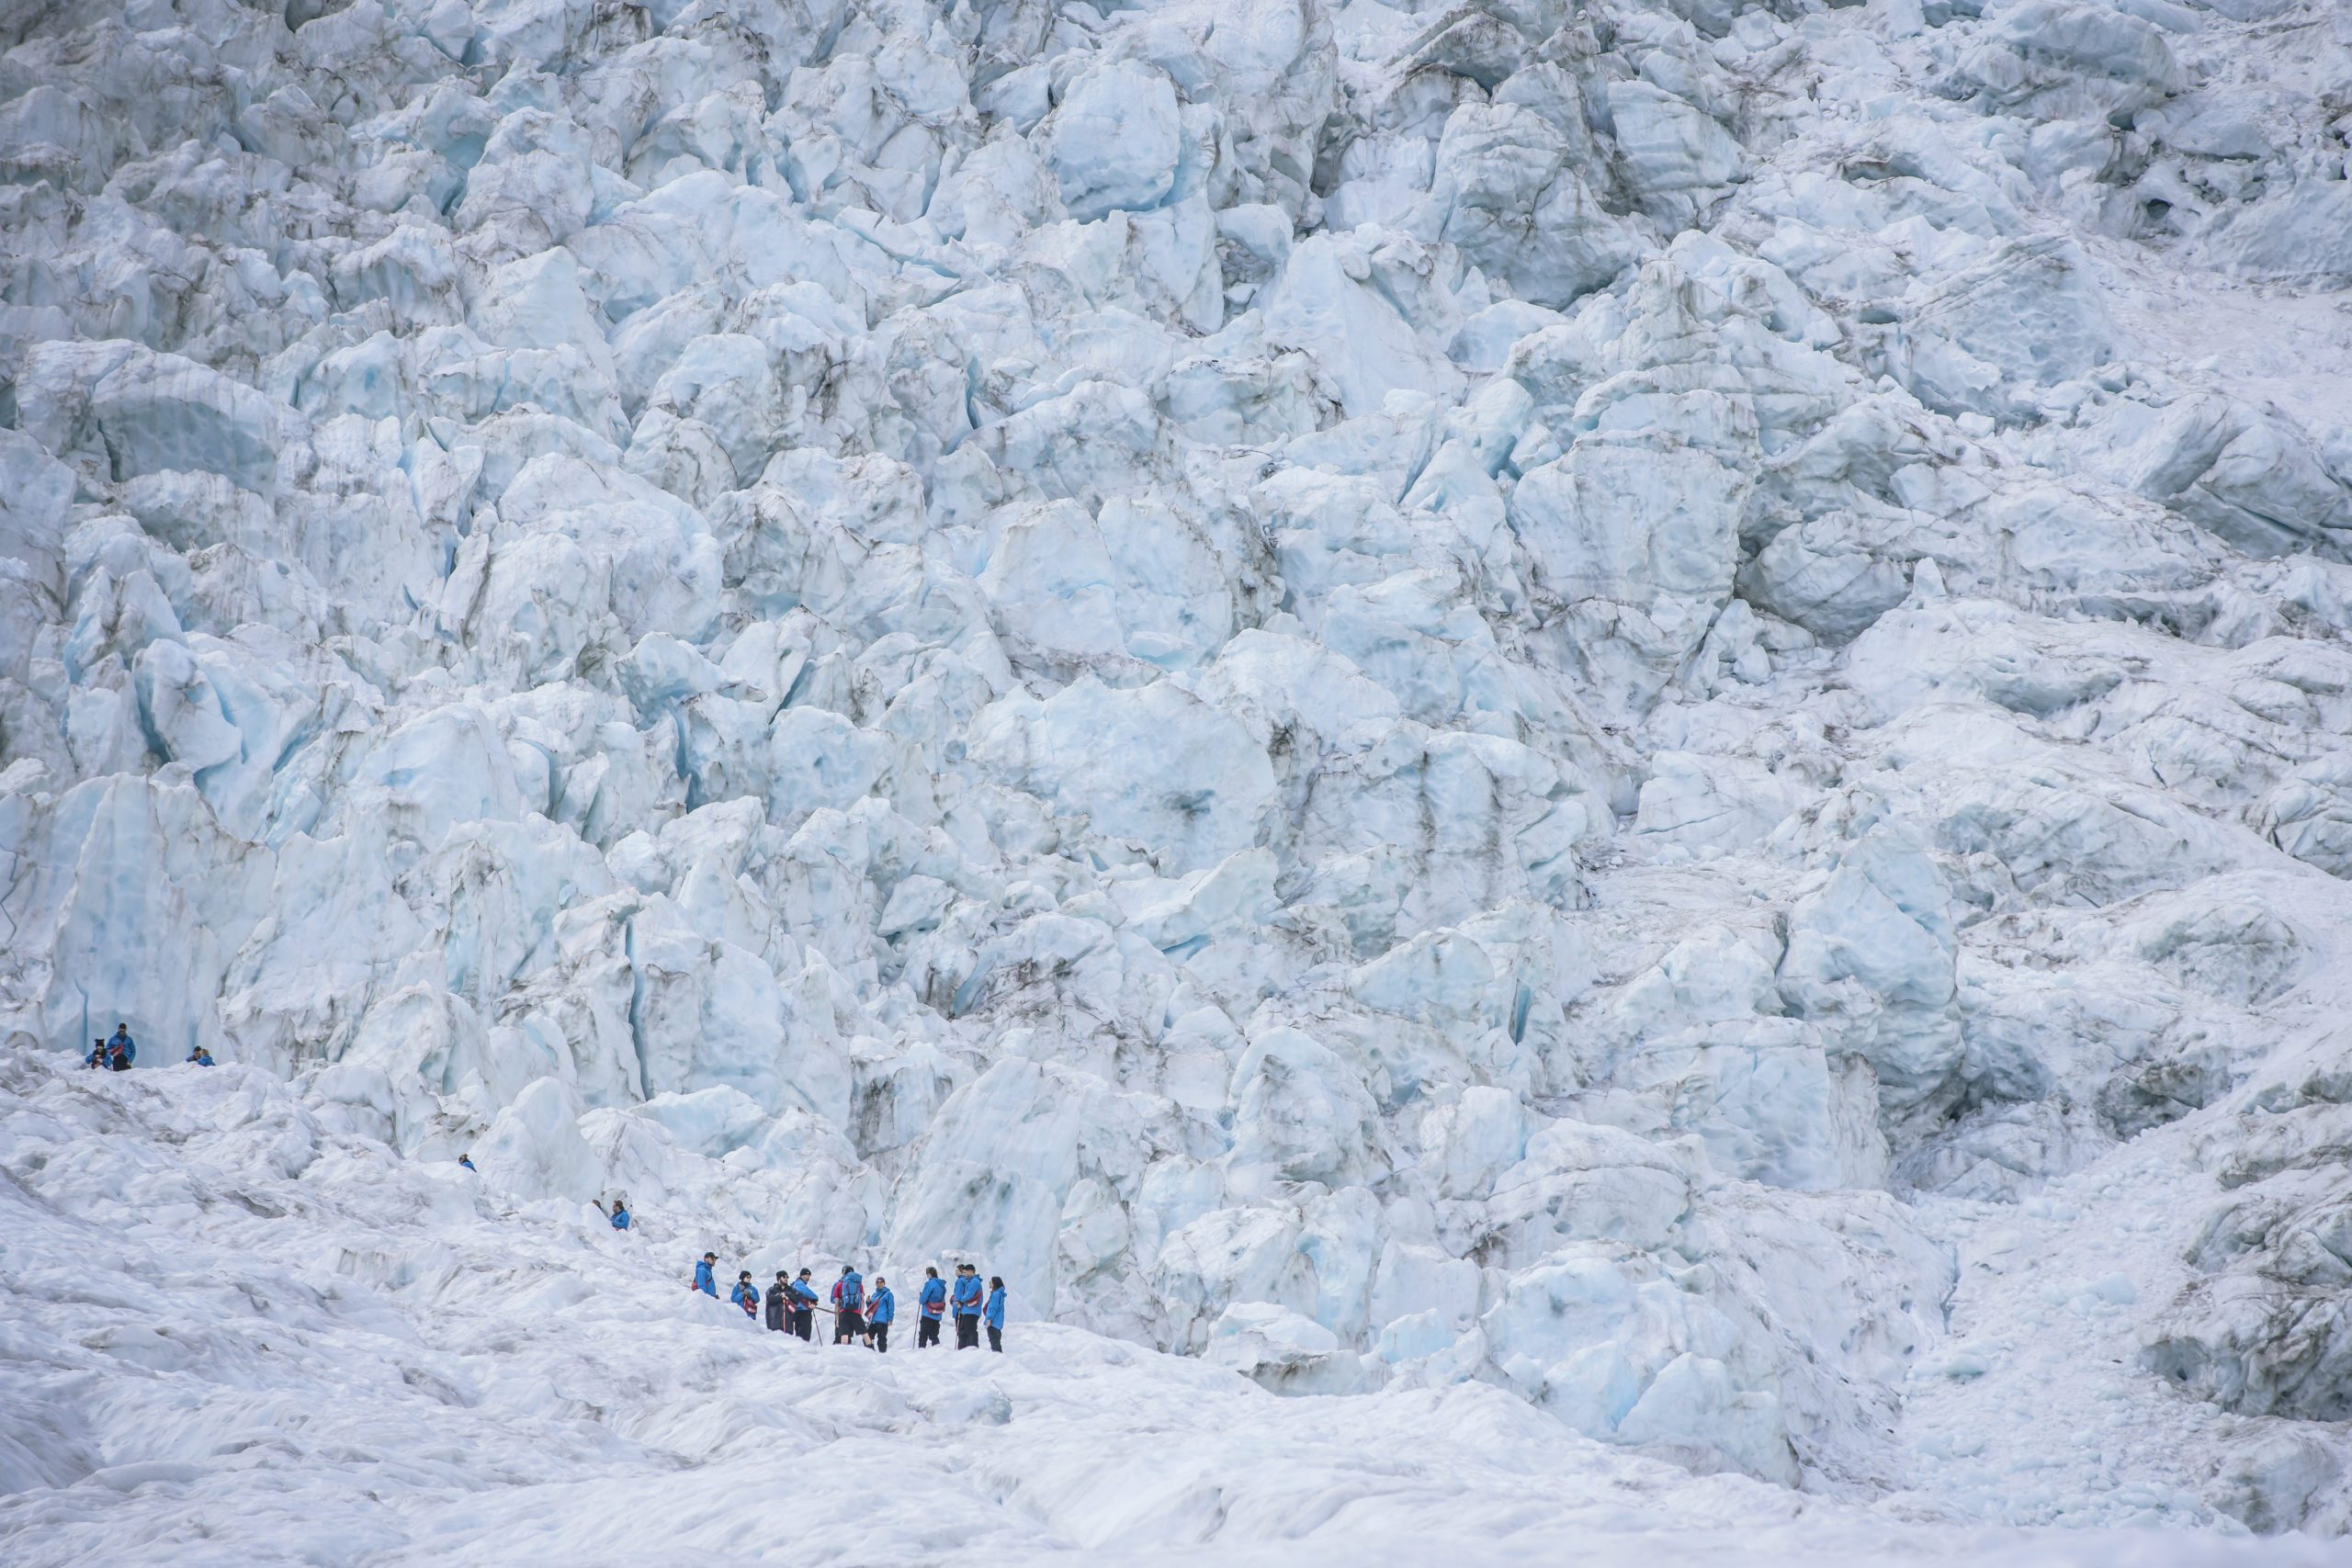 A group of heli-hikers walk in a line on Franz Josef glacier, looking tiny in comparison